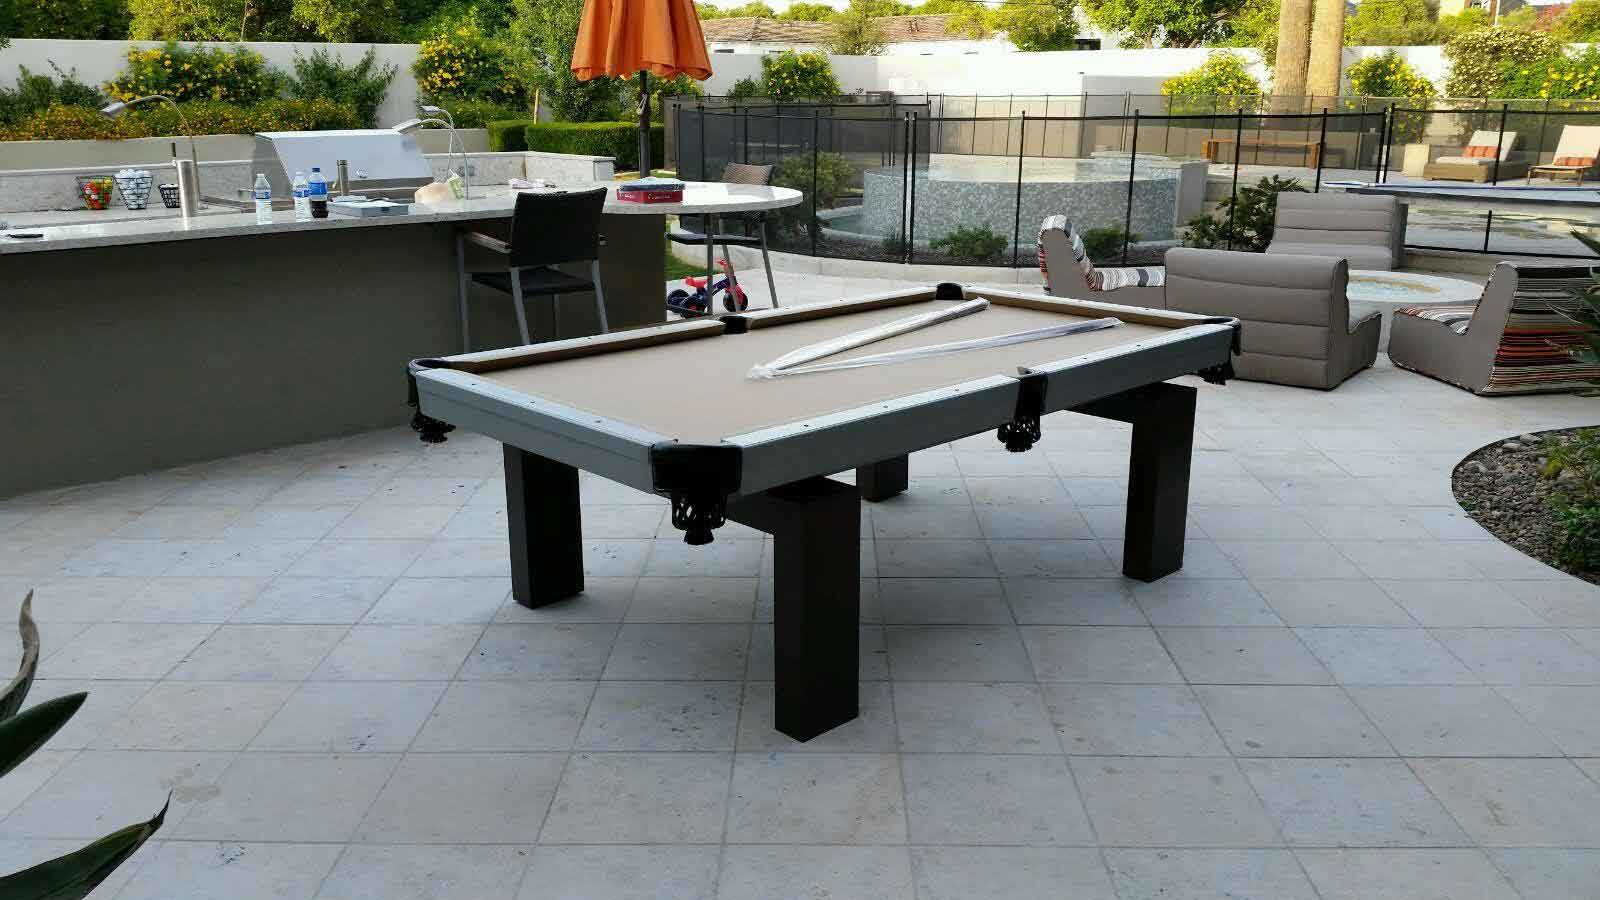 Oasis outdoor pool table in client's backyard